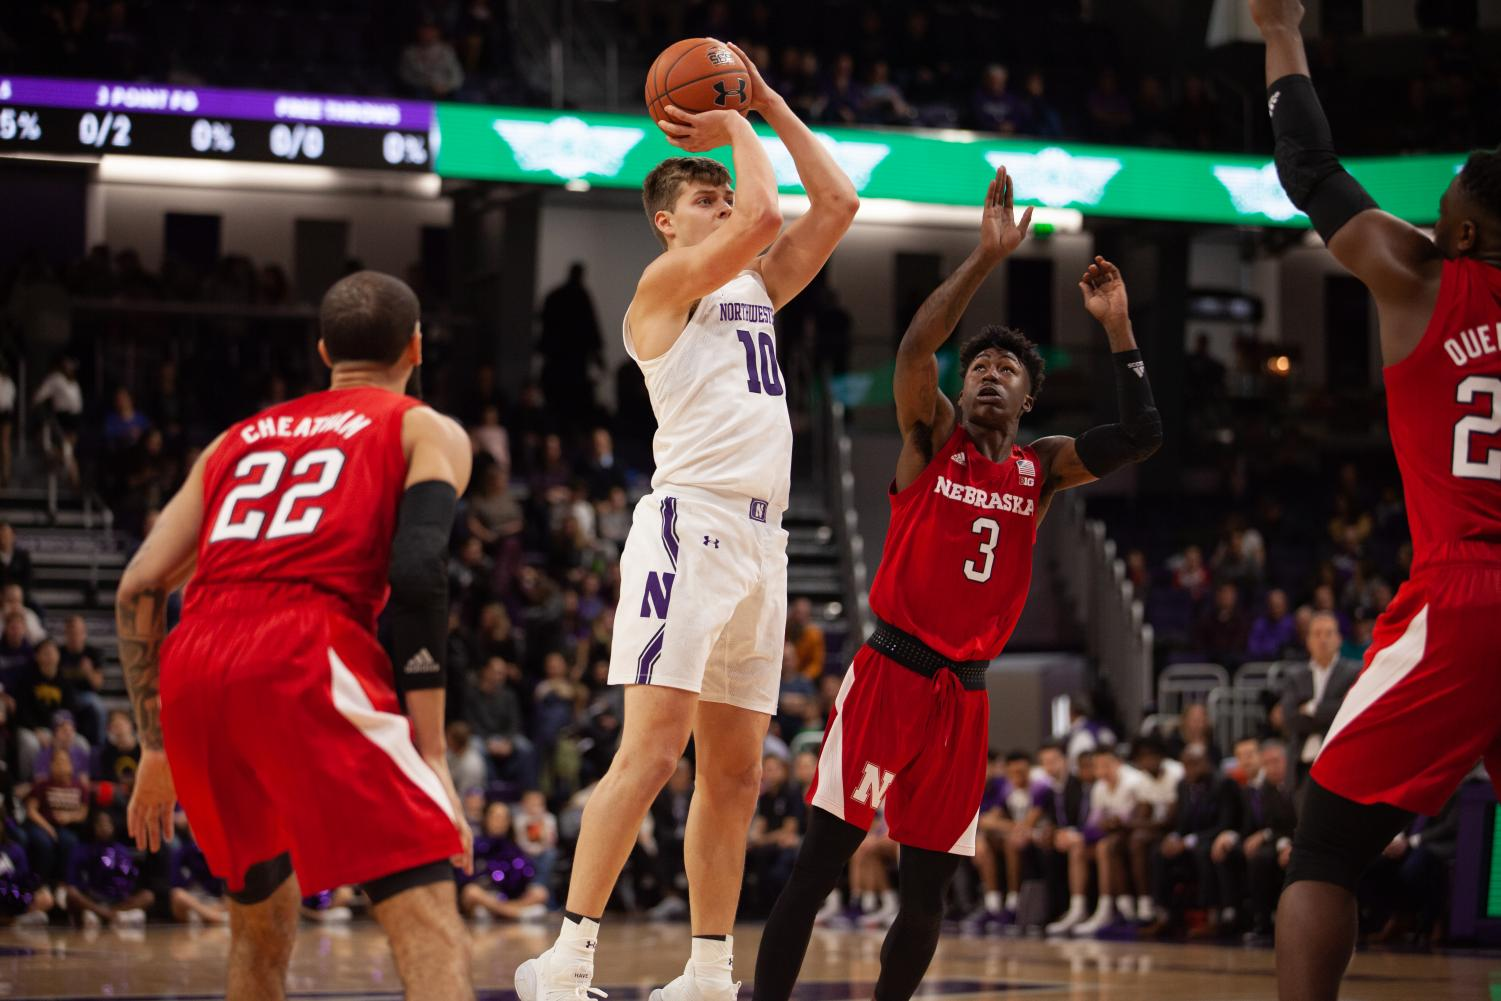 Miller Kopp shoots the ball. The sophomore finished the game with 15 points.